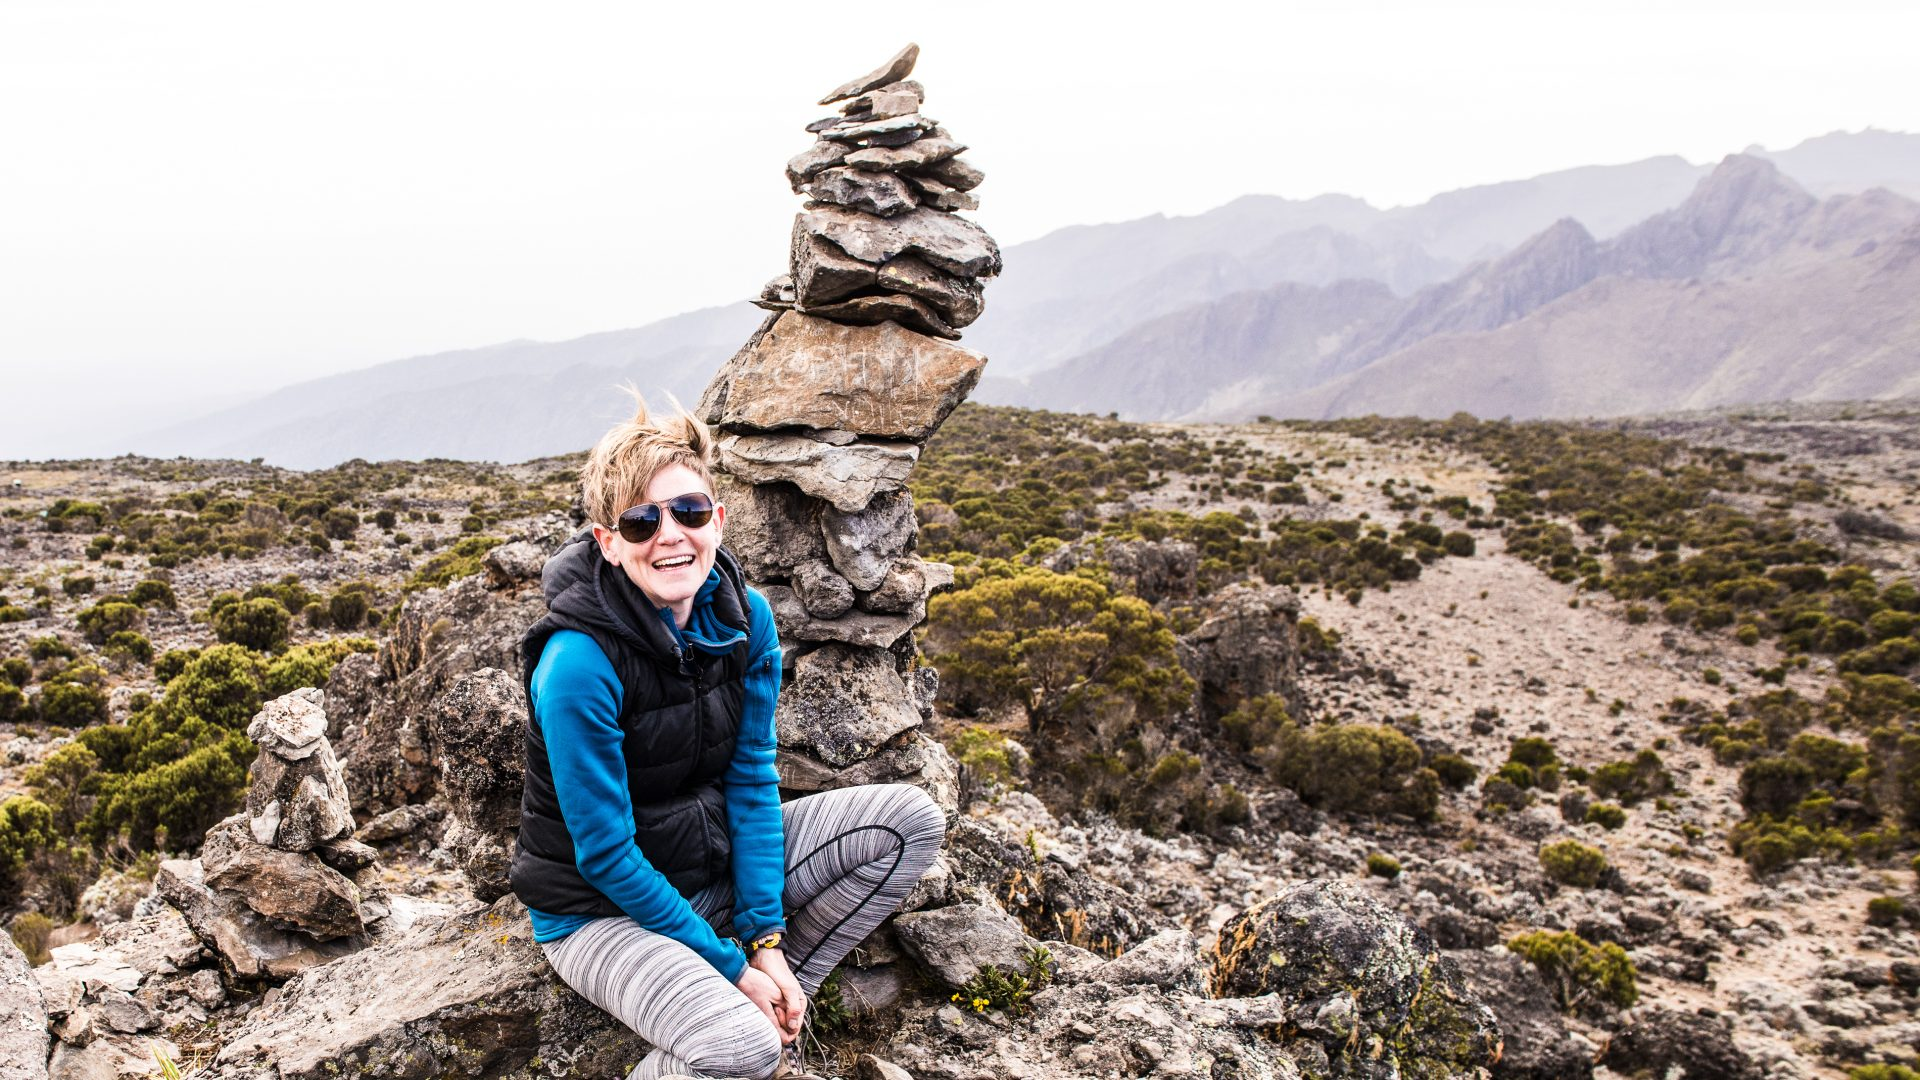 Contributor profile photo of Nicola Bailey. Sitting at a viewing spot during the hike to Mount Kilimanjaro